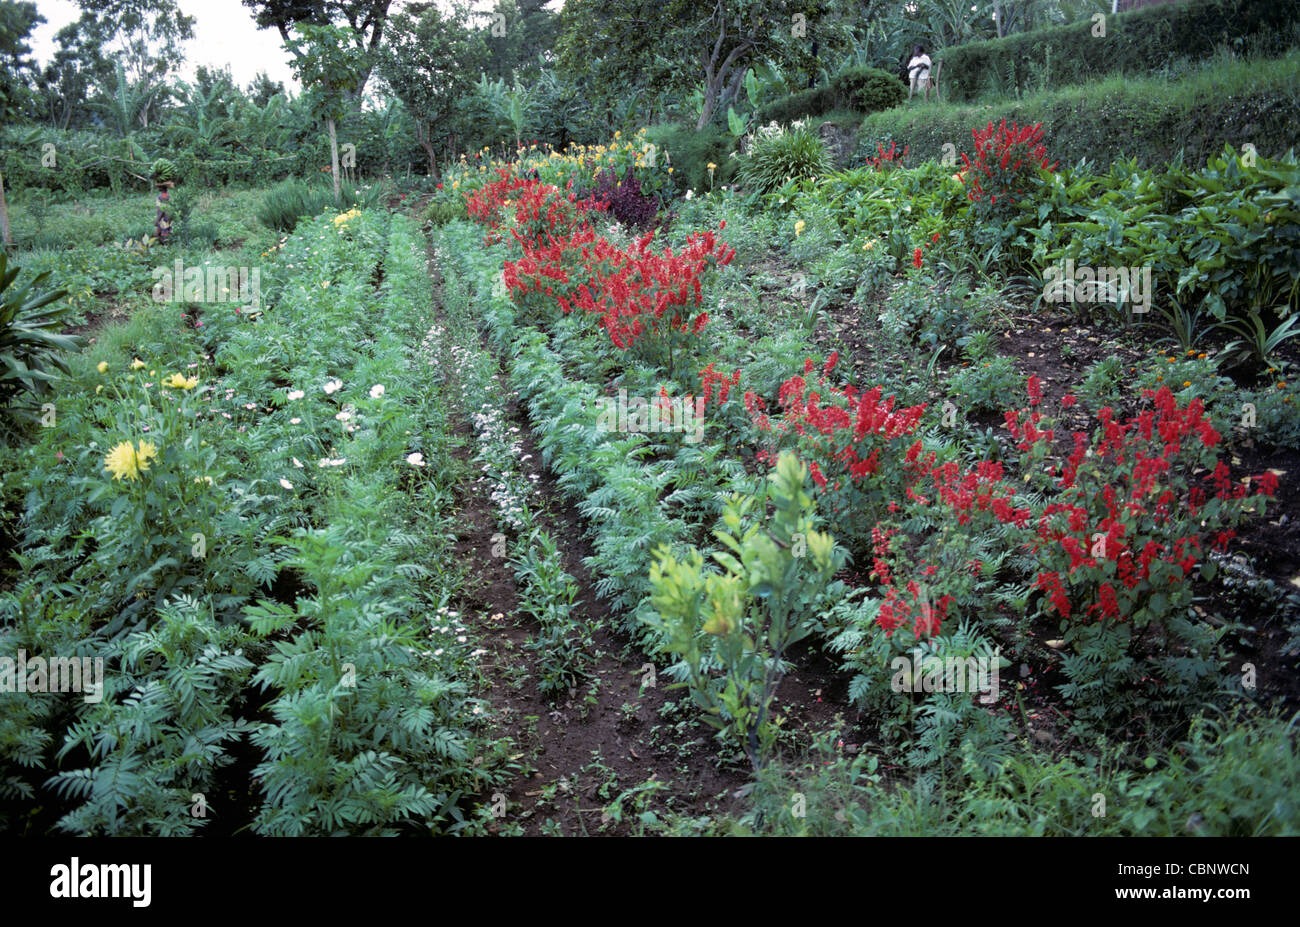 Well kept church mission garden with several types of flowering ornamentals, Marunga, Kilimanjaro - Stock Image